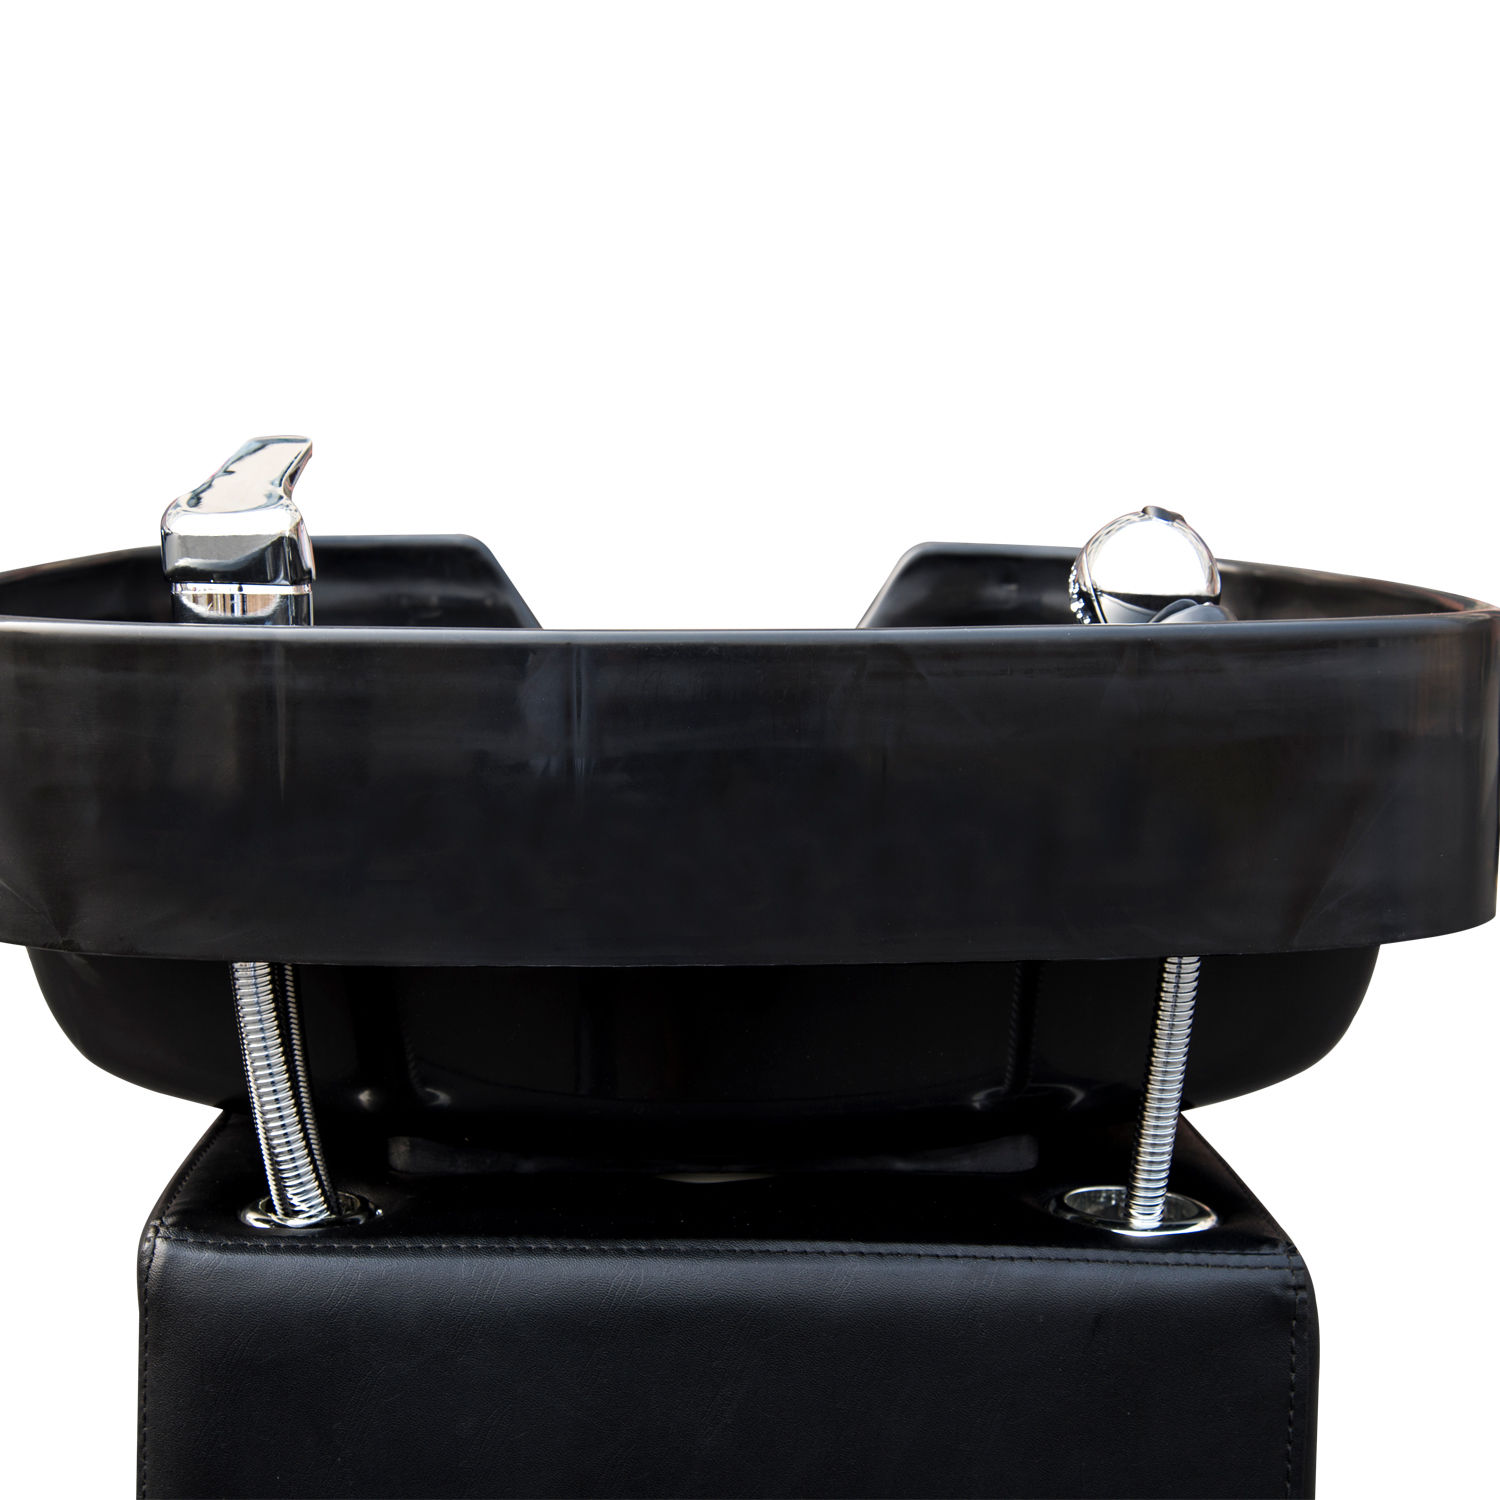 Salon Sink And Chair Shampoo Barber Chair Salon Backwash Bowl Sink Spa